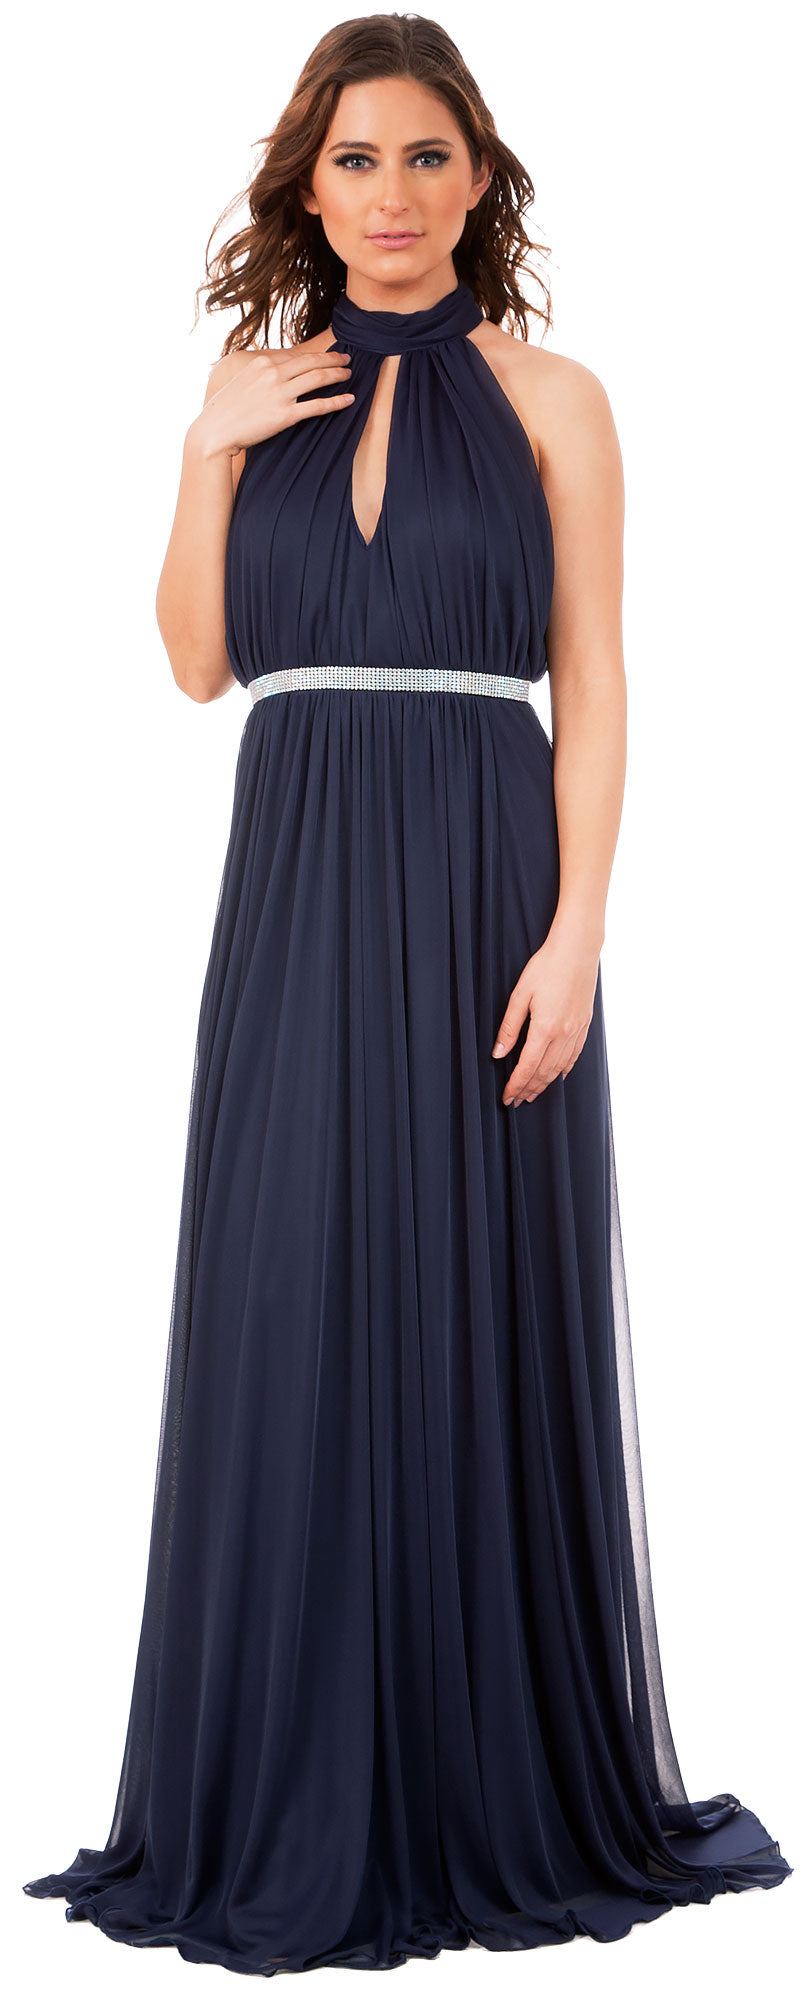 Image of High Halter Neck Long Formal Bridesmaid Dress With Keyhole in Navy